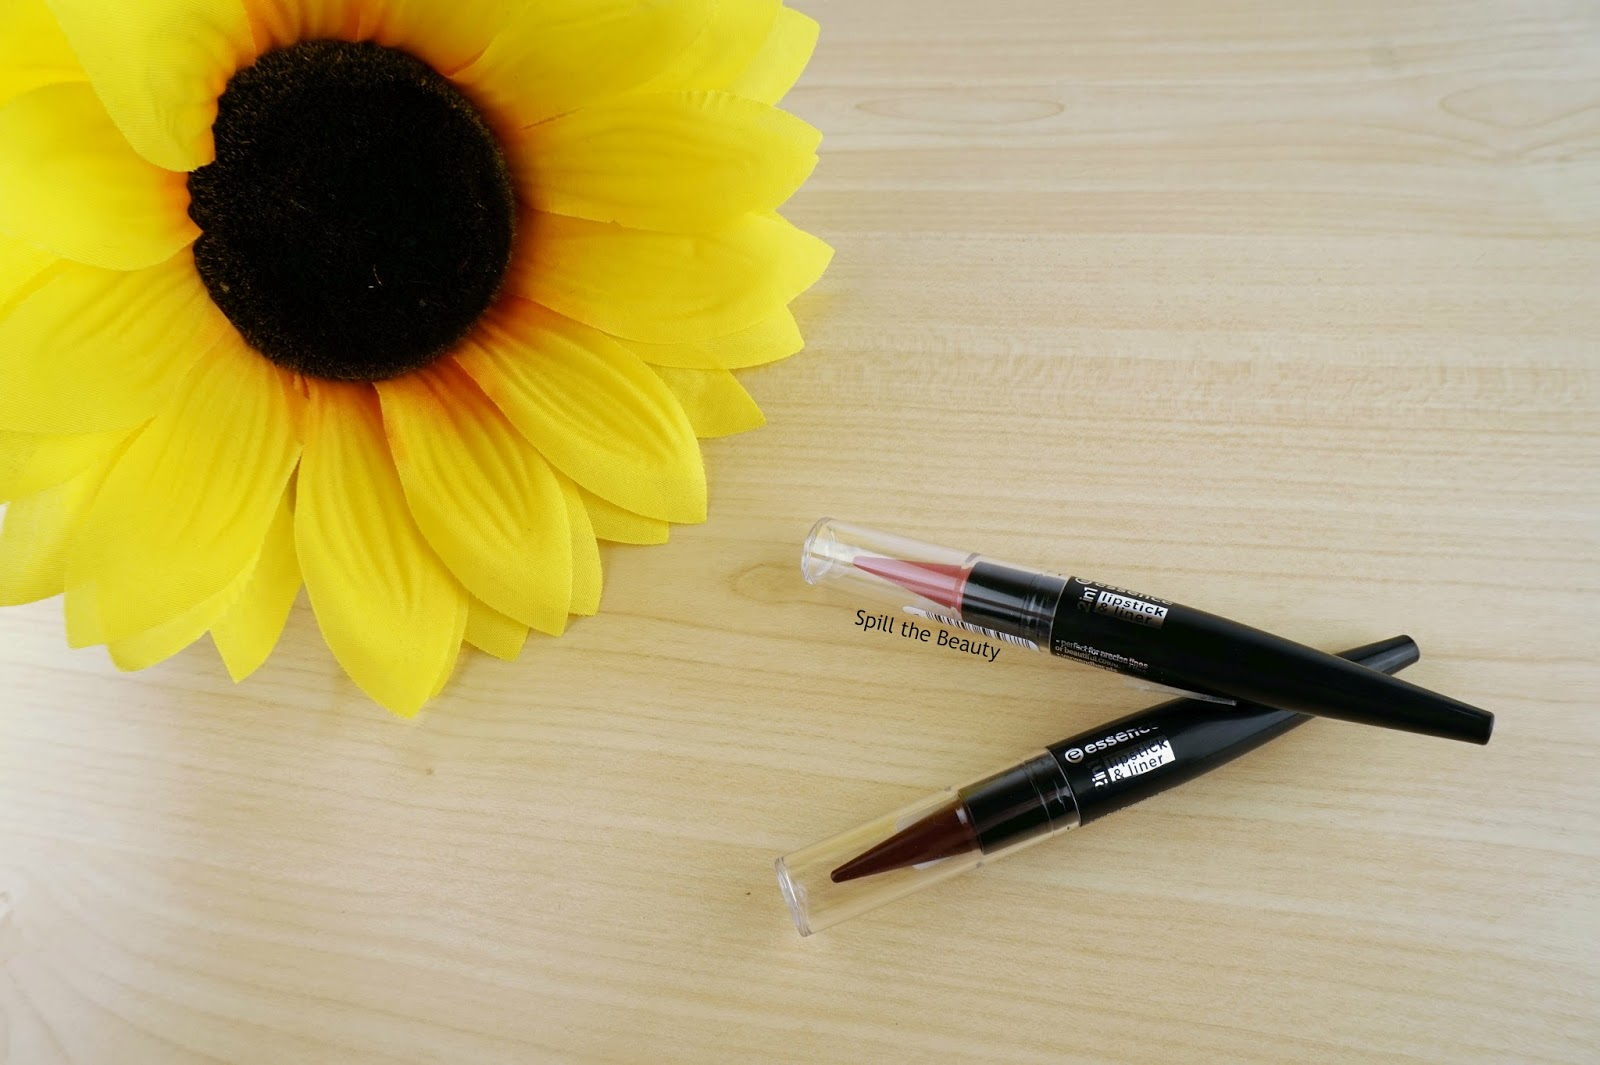 Essence 2-in-1 Lipstick & Liner in 'Vintage Rose', and 'Lush Berry' – Review, Swatches, and Look